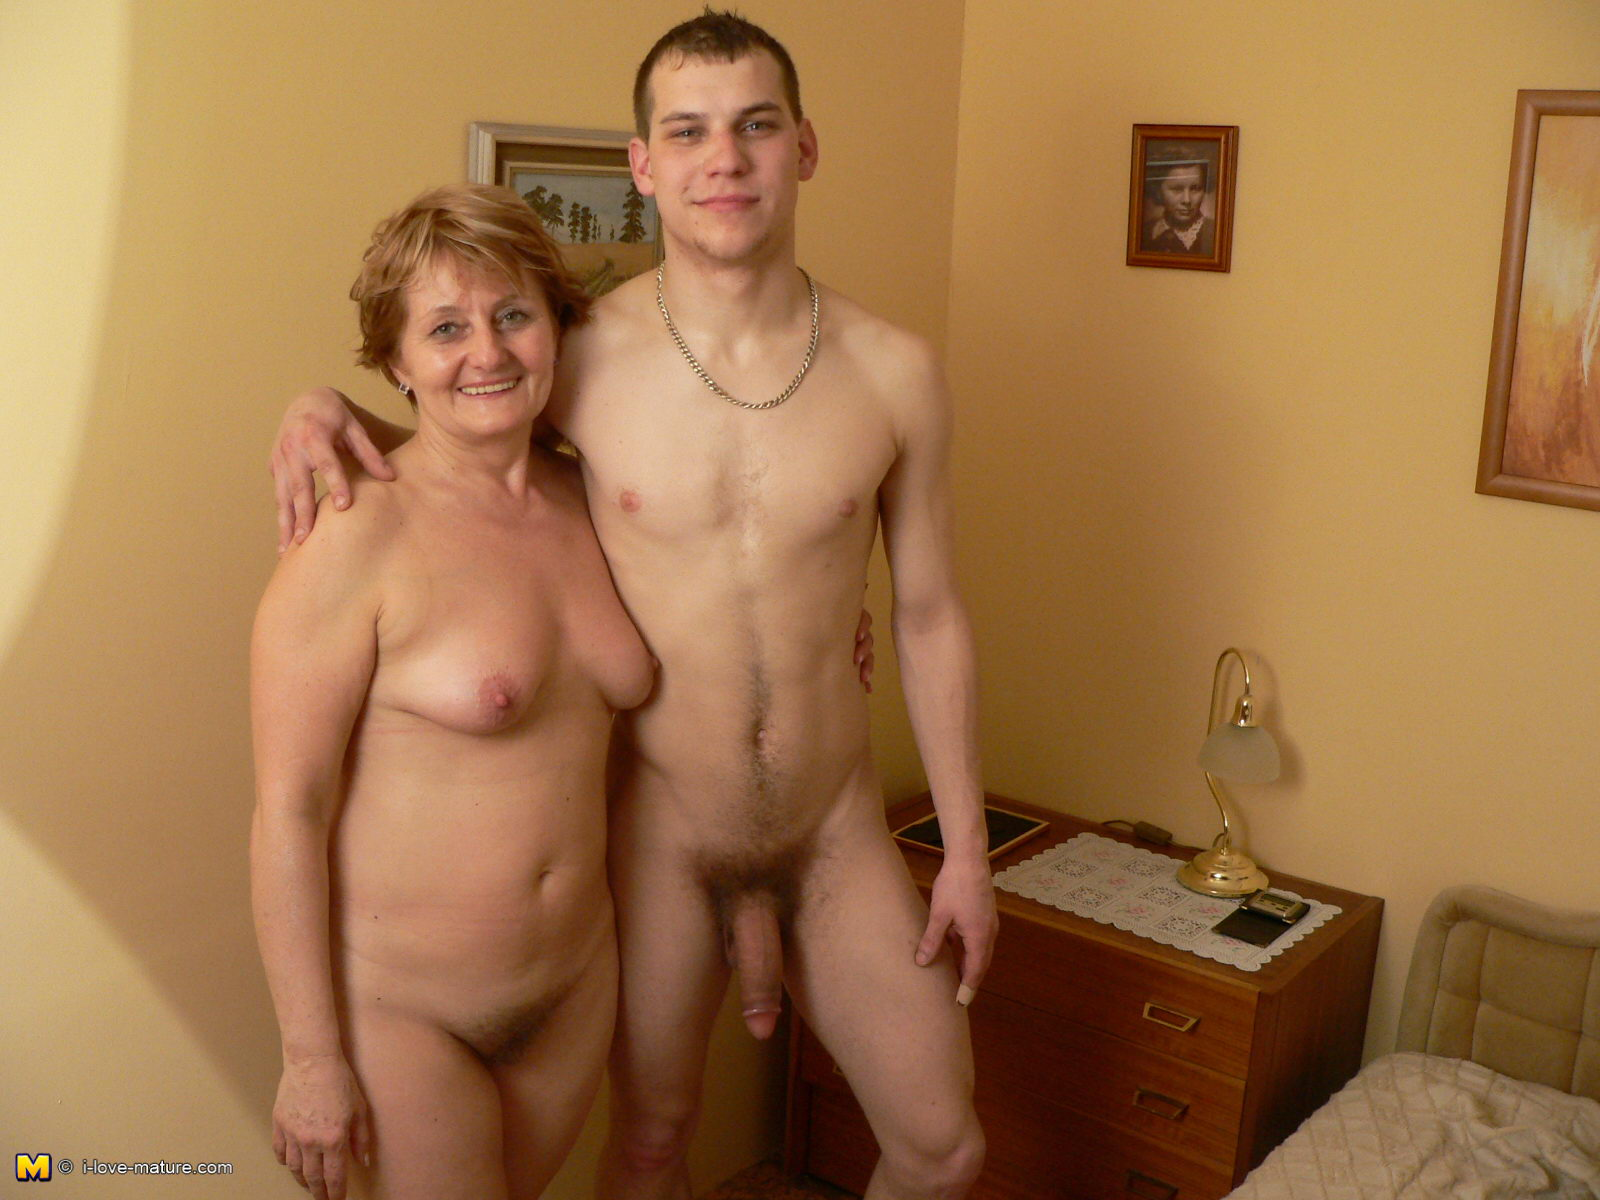 Nude mom and son pictures nude tube